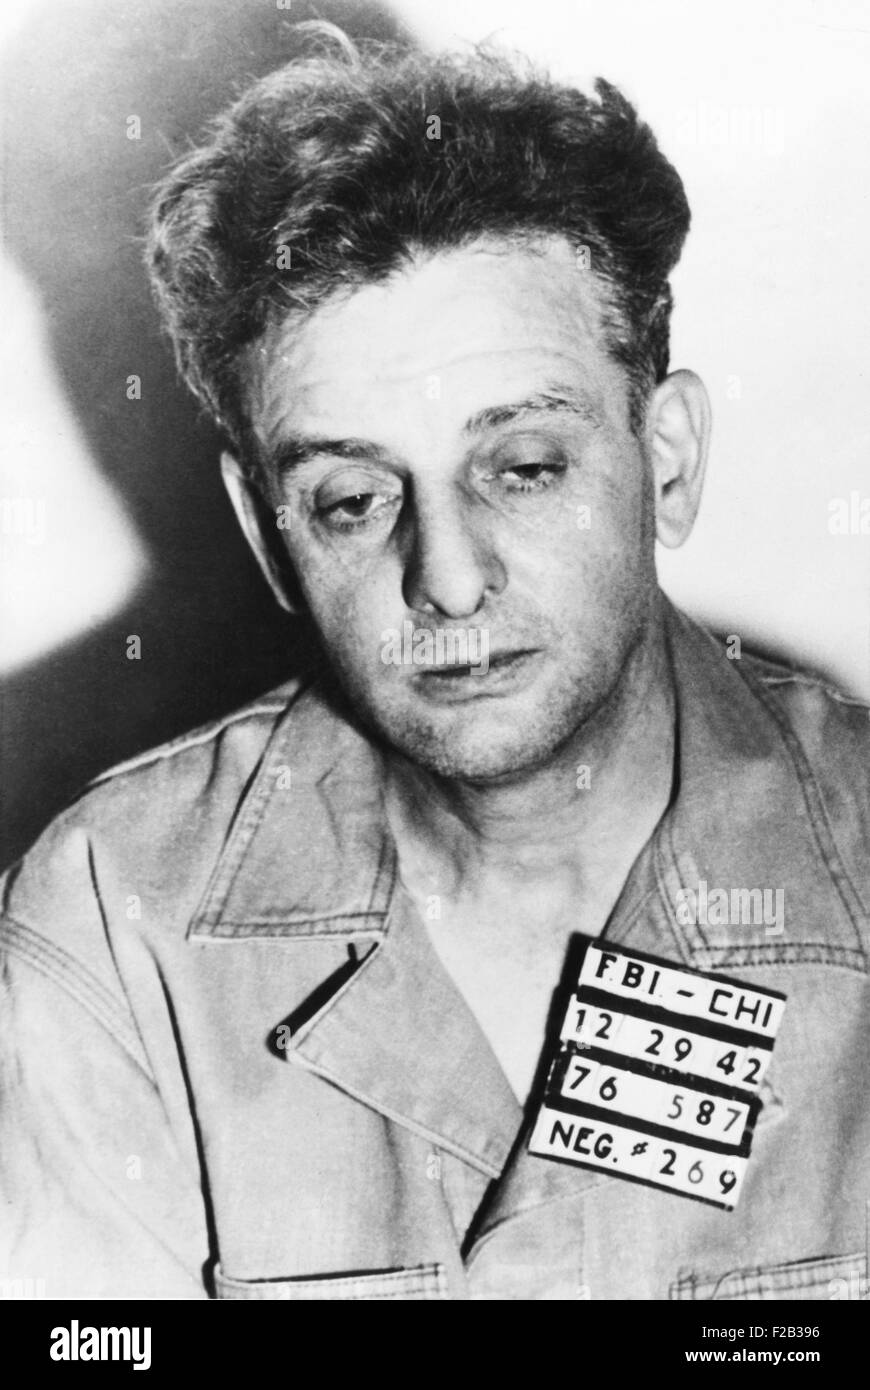 Roger 'Terrible' Touly, surrendered to FBI shortly after G-men killed two members of the gang. He was arrested with - Stock Image